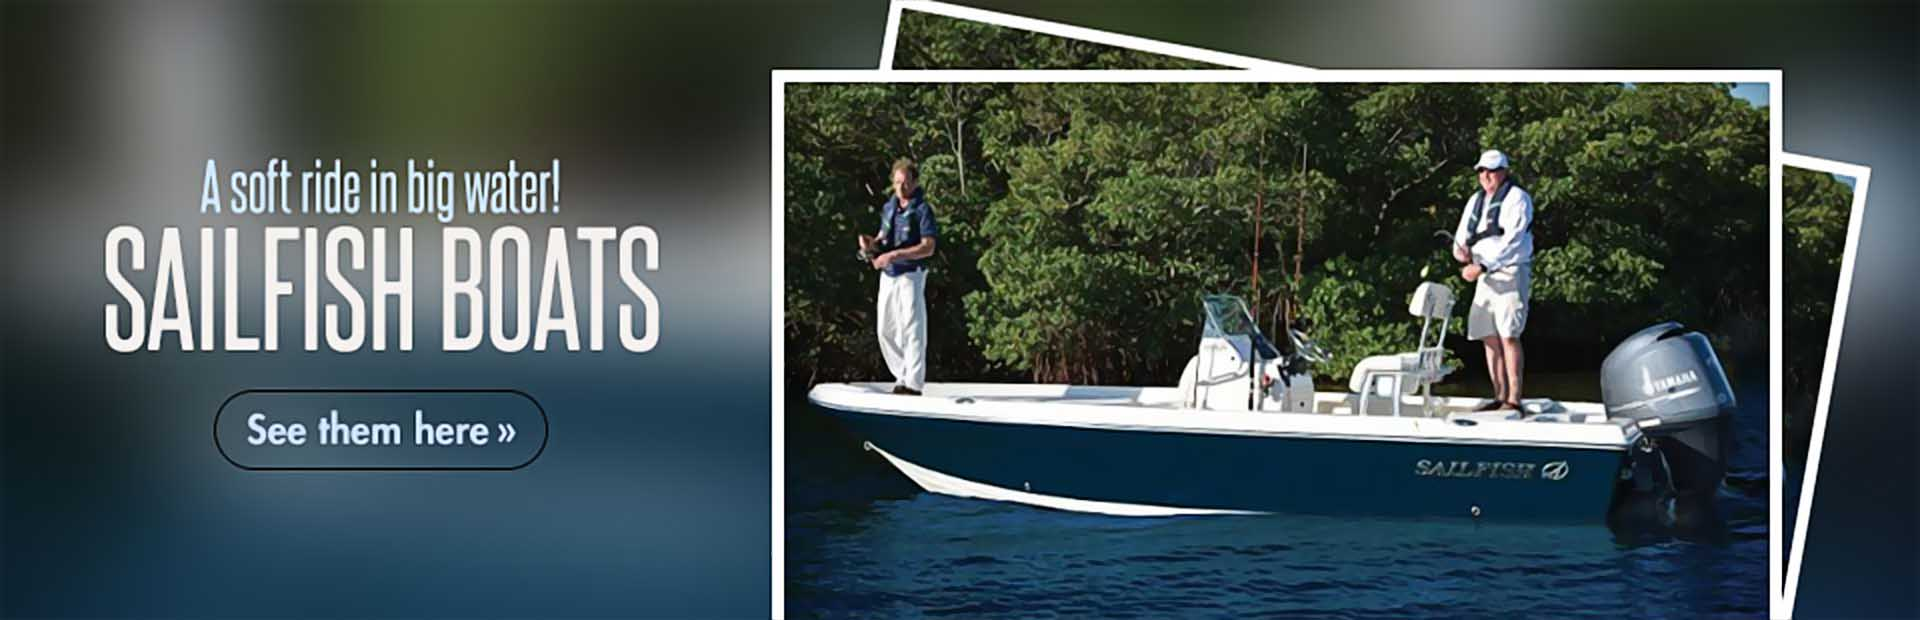 Sailfish Boats: Click here to view the showcase!